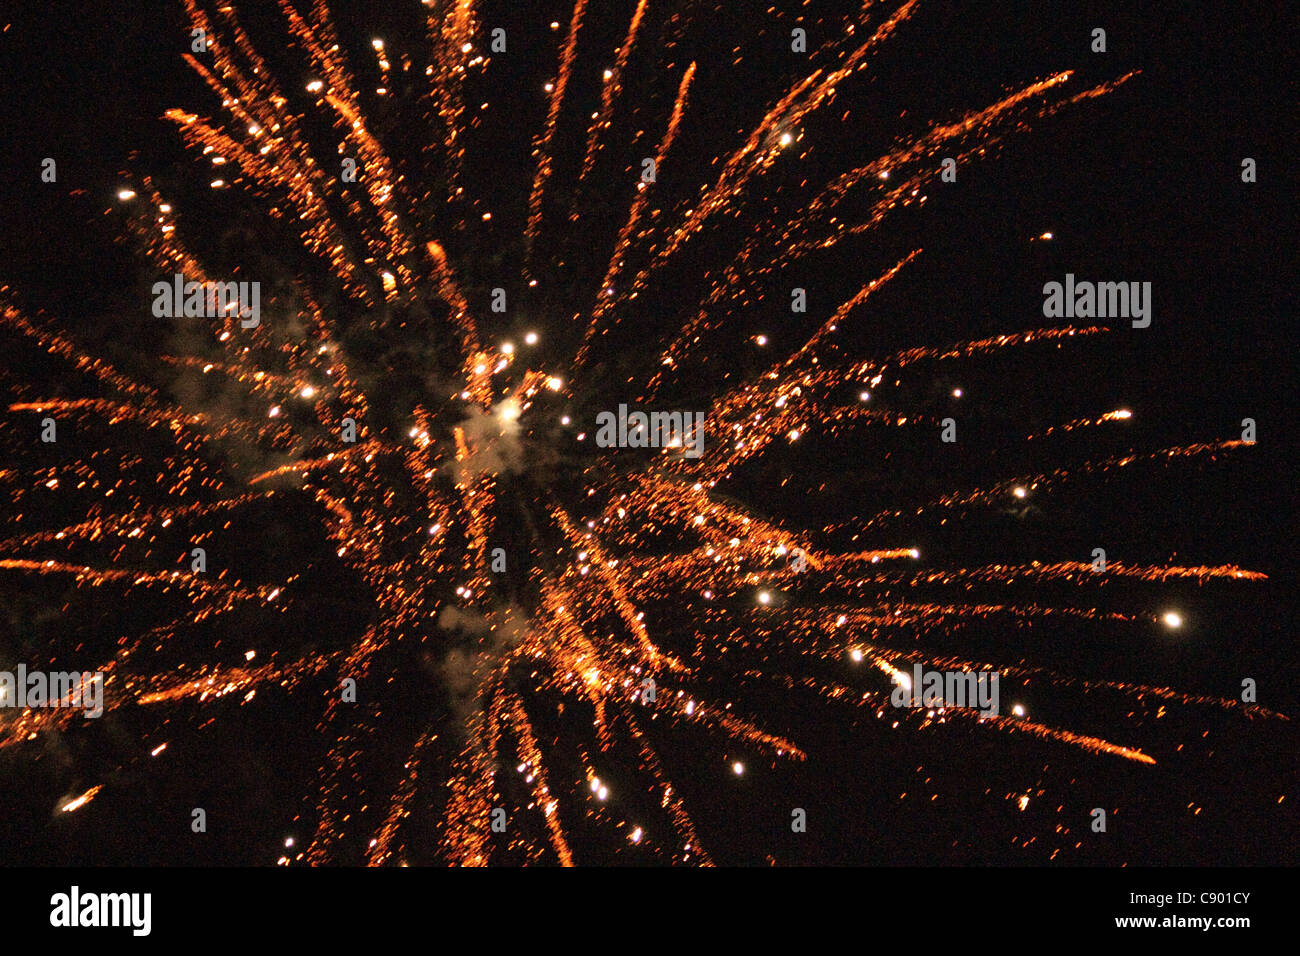 fire works in action on July 4th - Stock Image